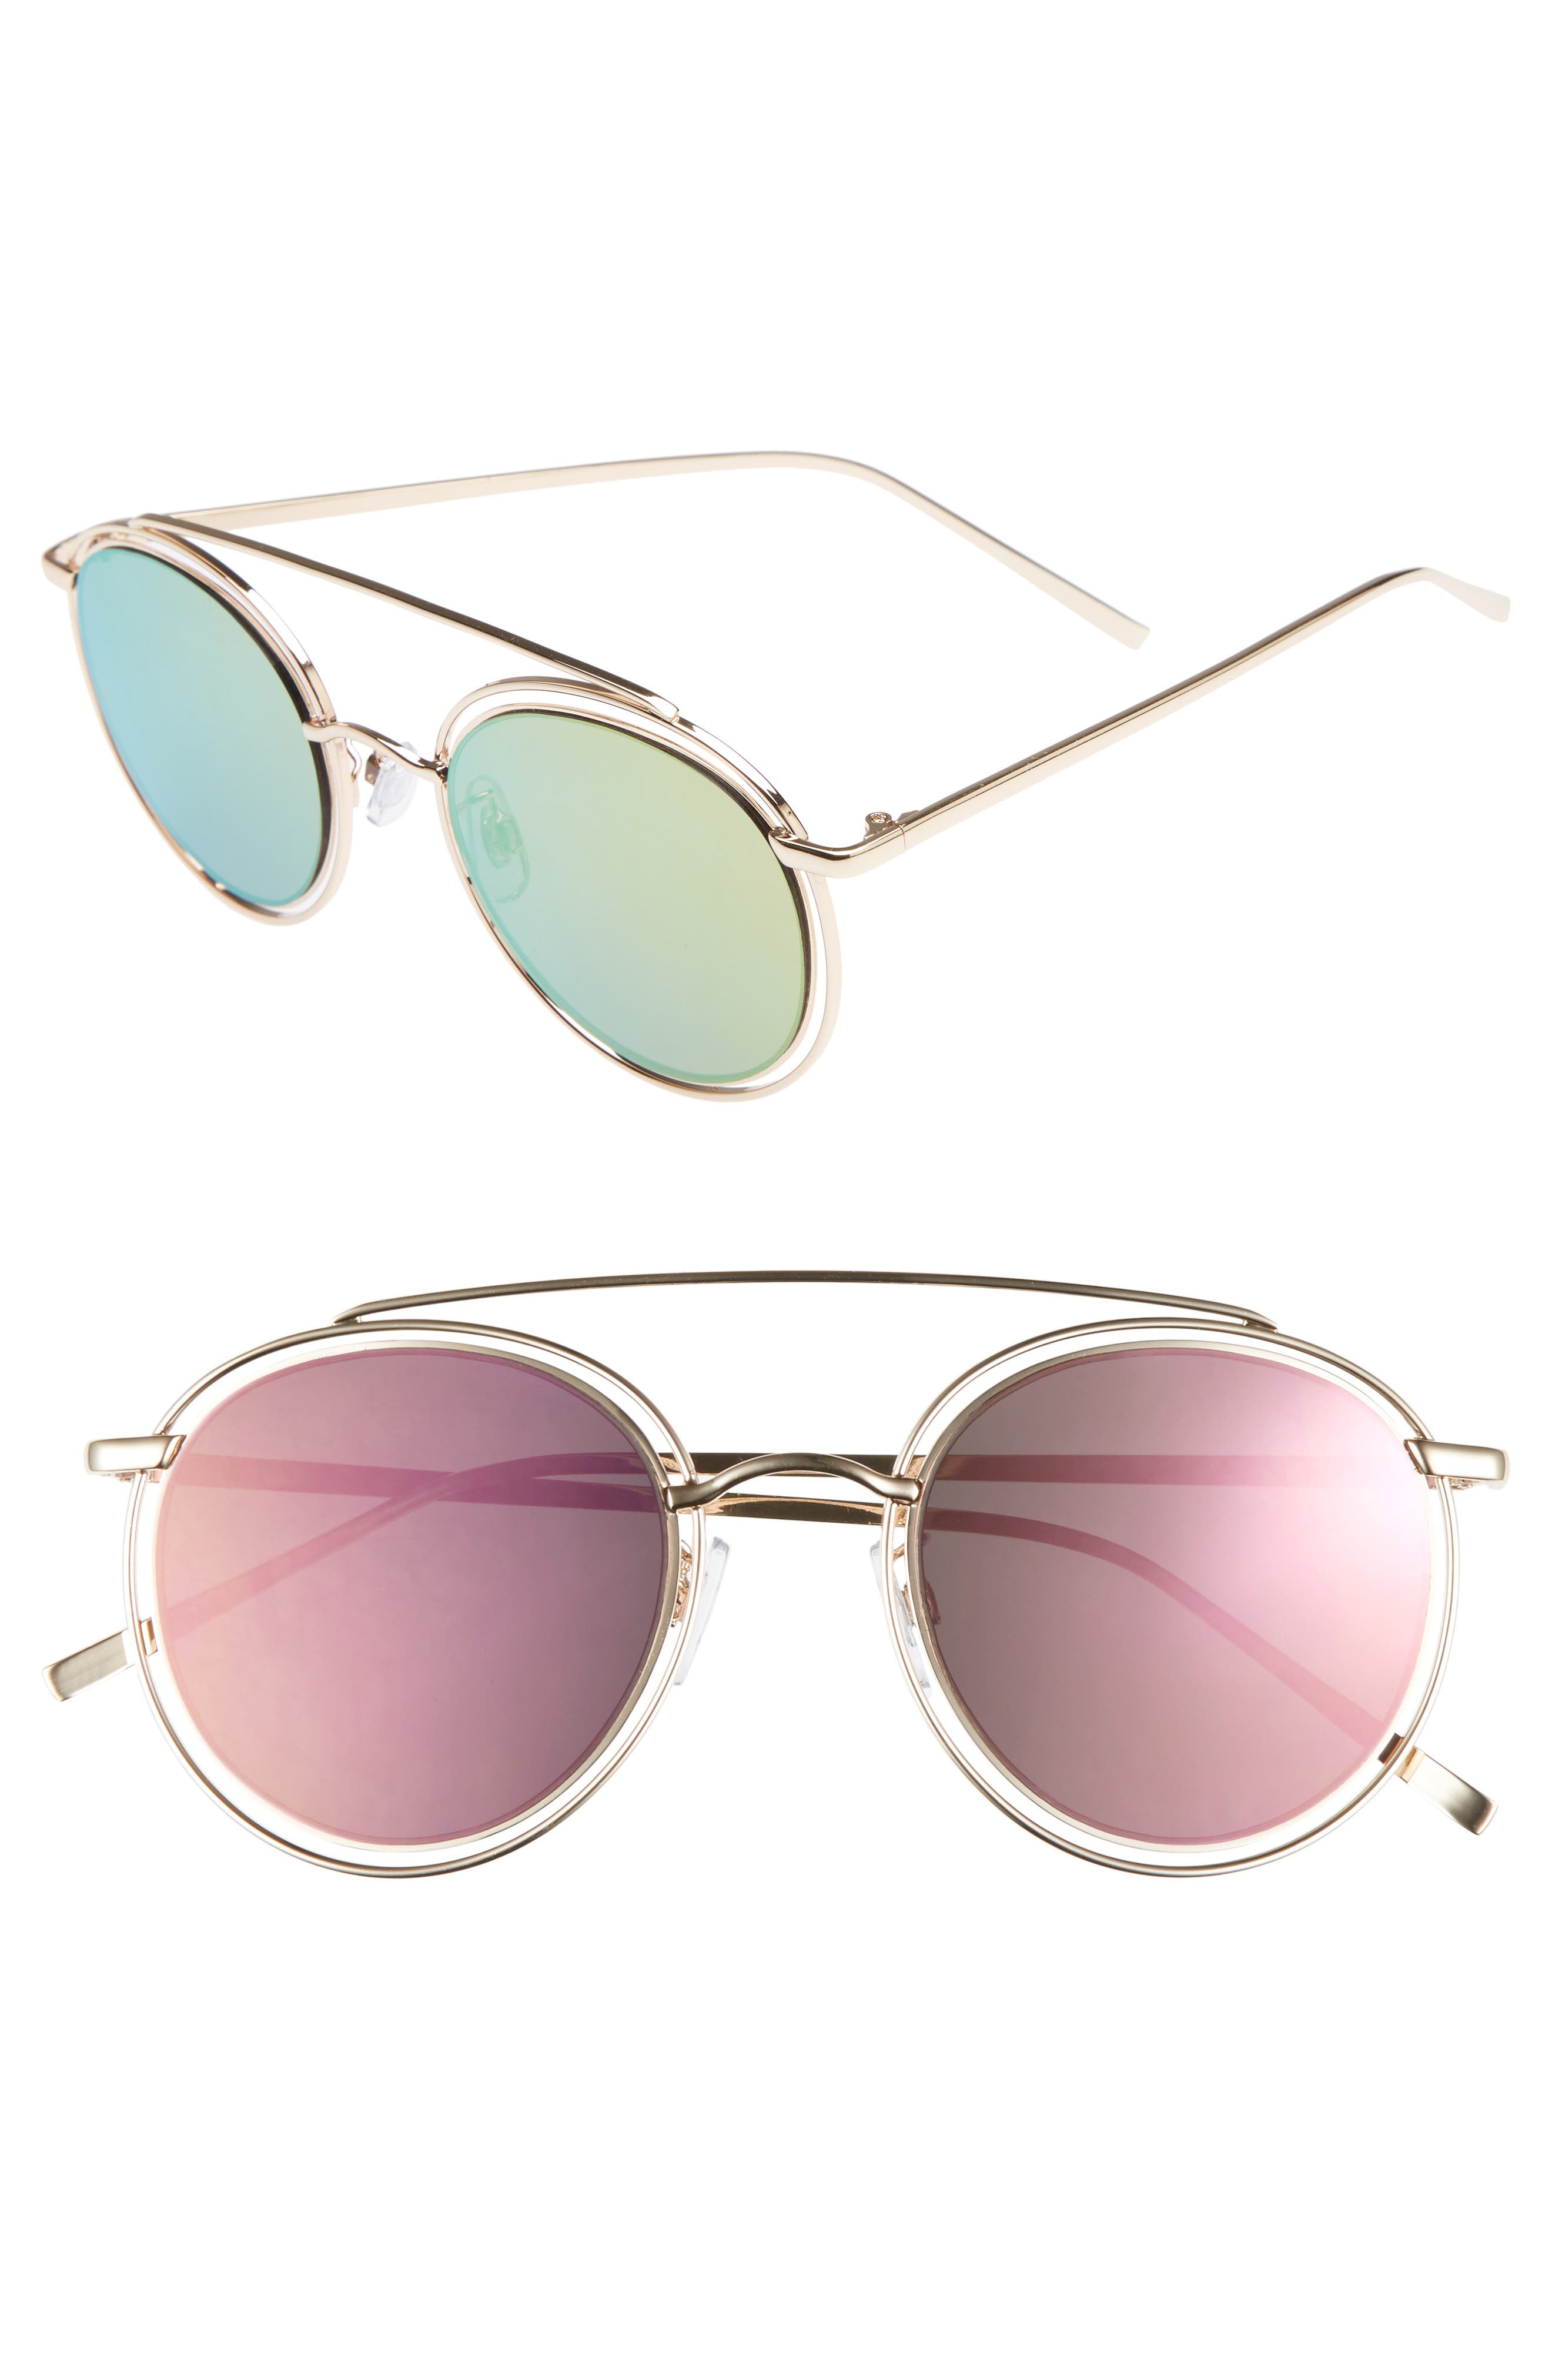 50mm Browbar Sunglasses,                         Main,                         color, GOLD/ PINK